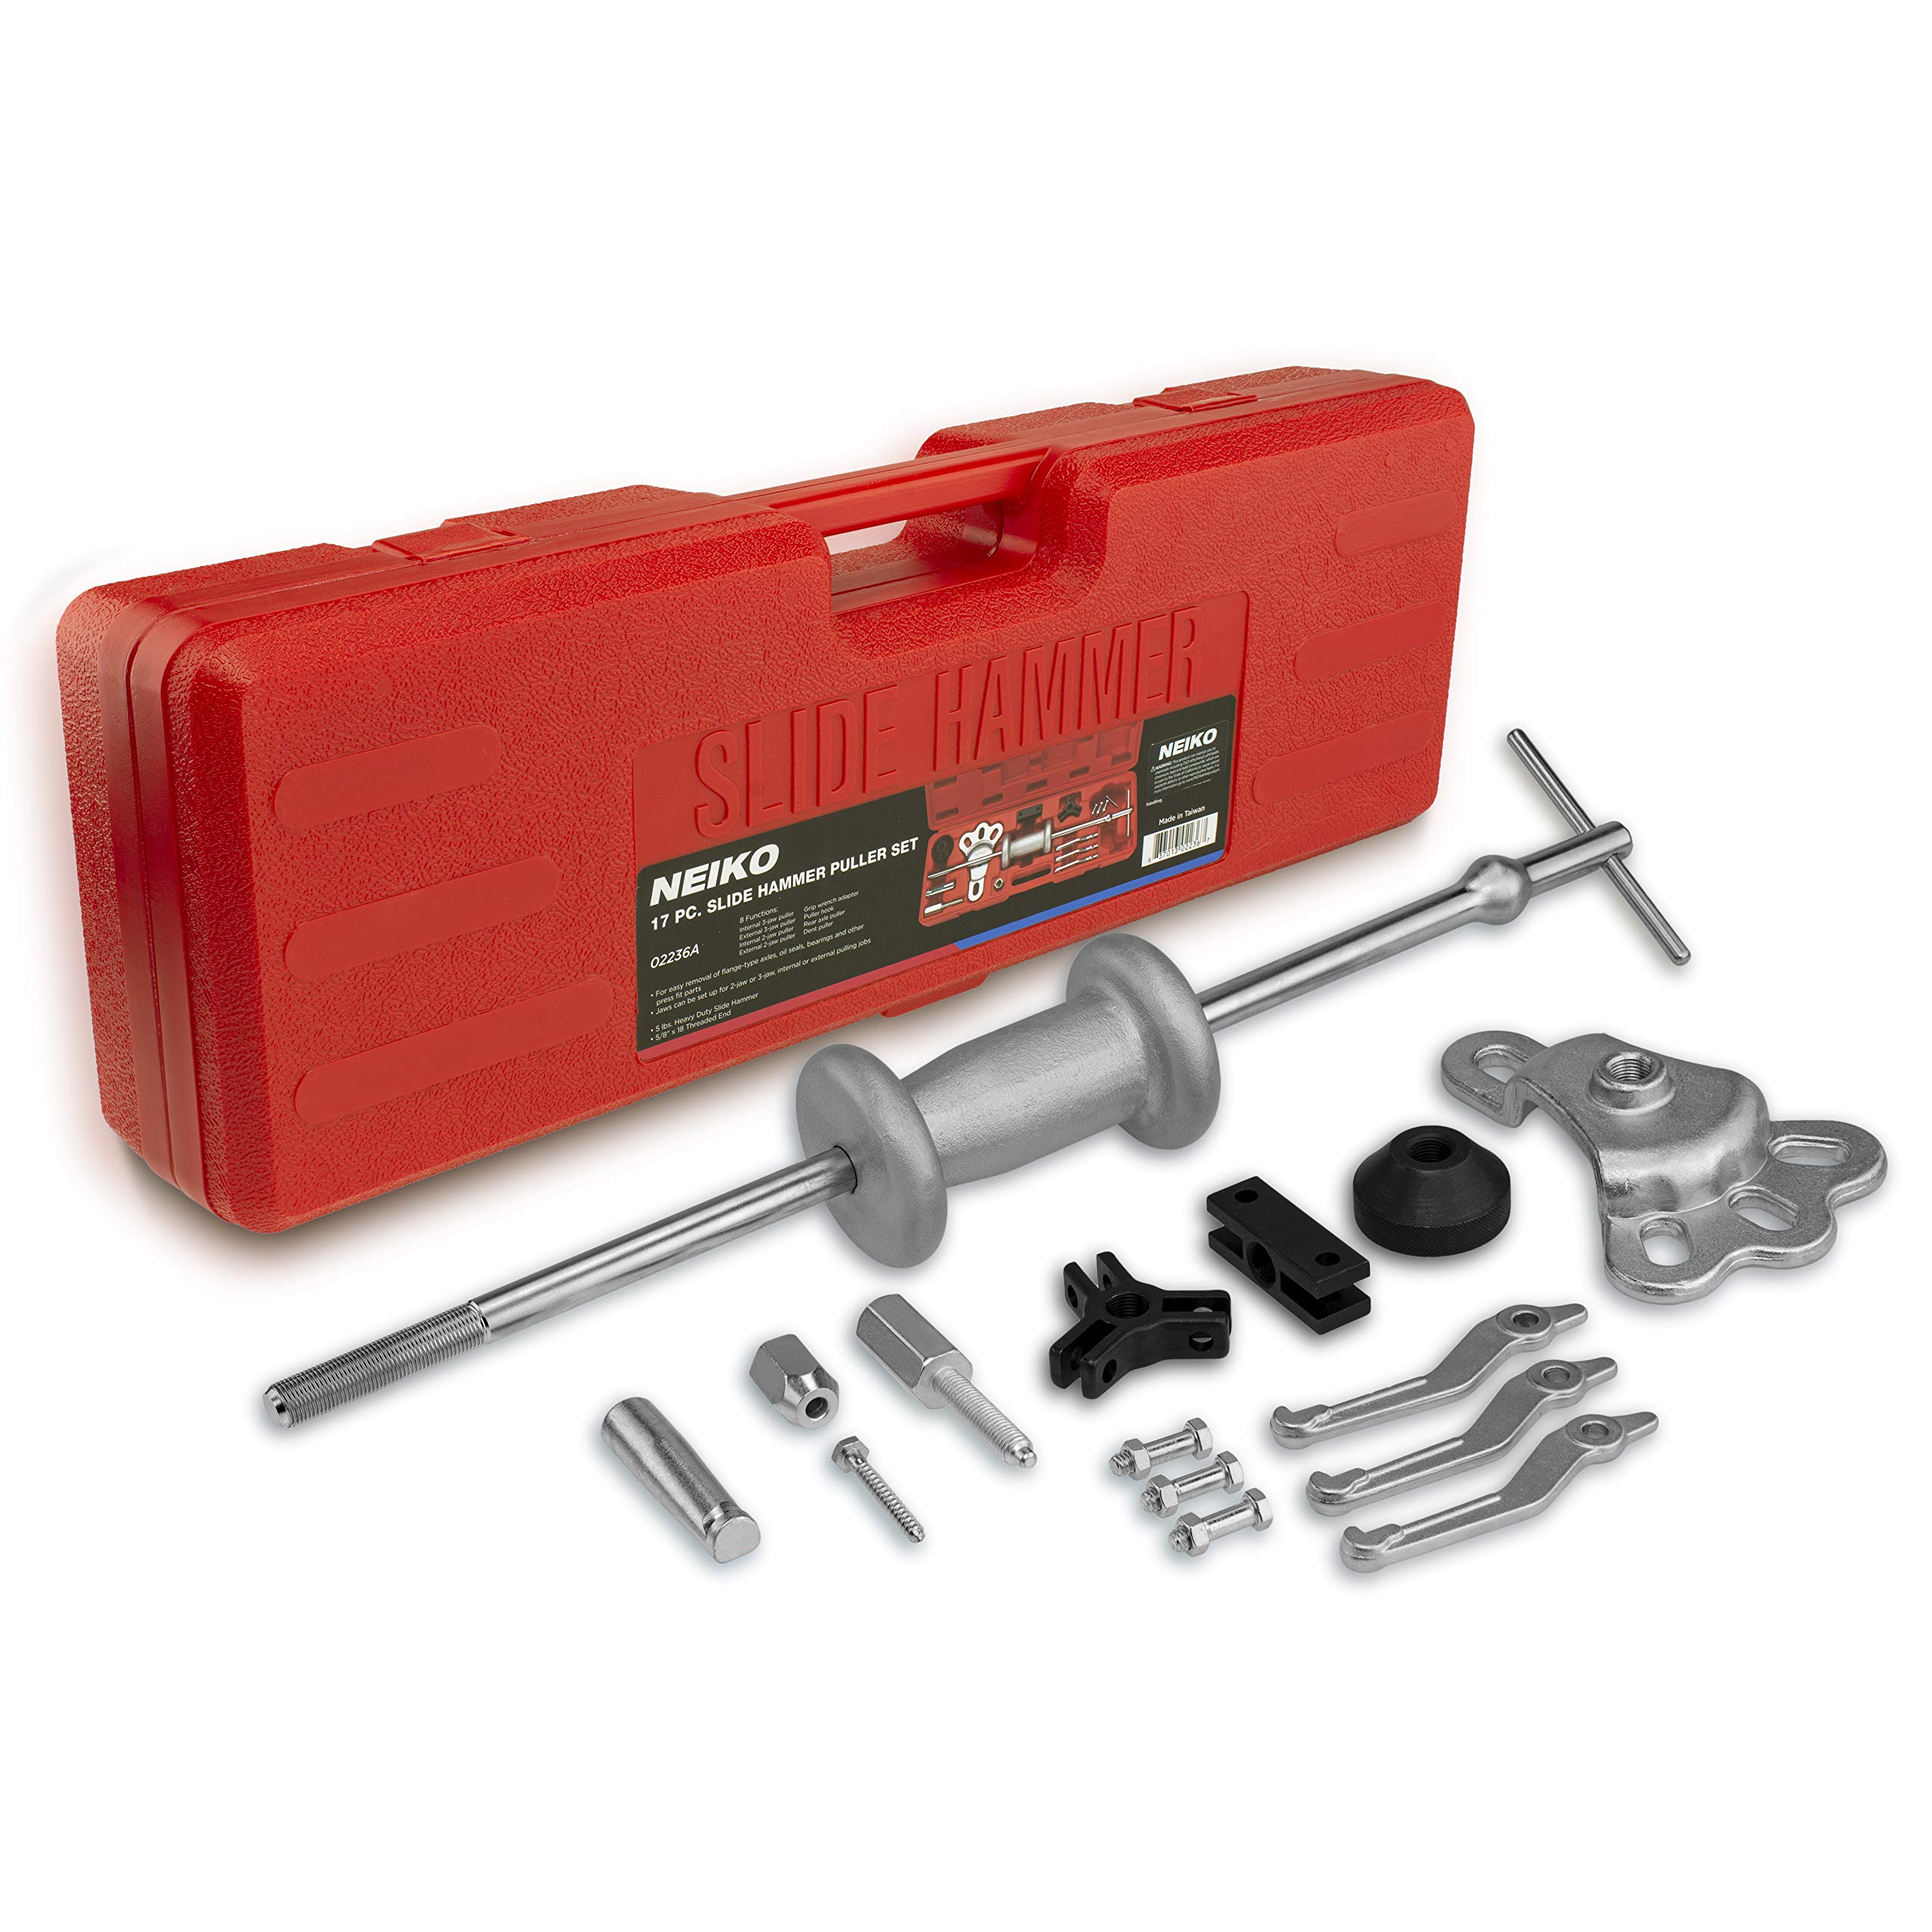 Neiko 02236A Automotive Slide Hammer Puller Kit, 17 Piece | Steel T Handle Bar with Cr-V Steel Jaw Attachments by Neiko